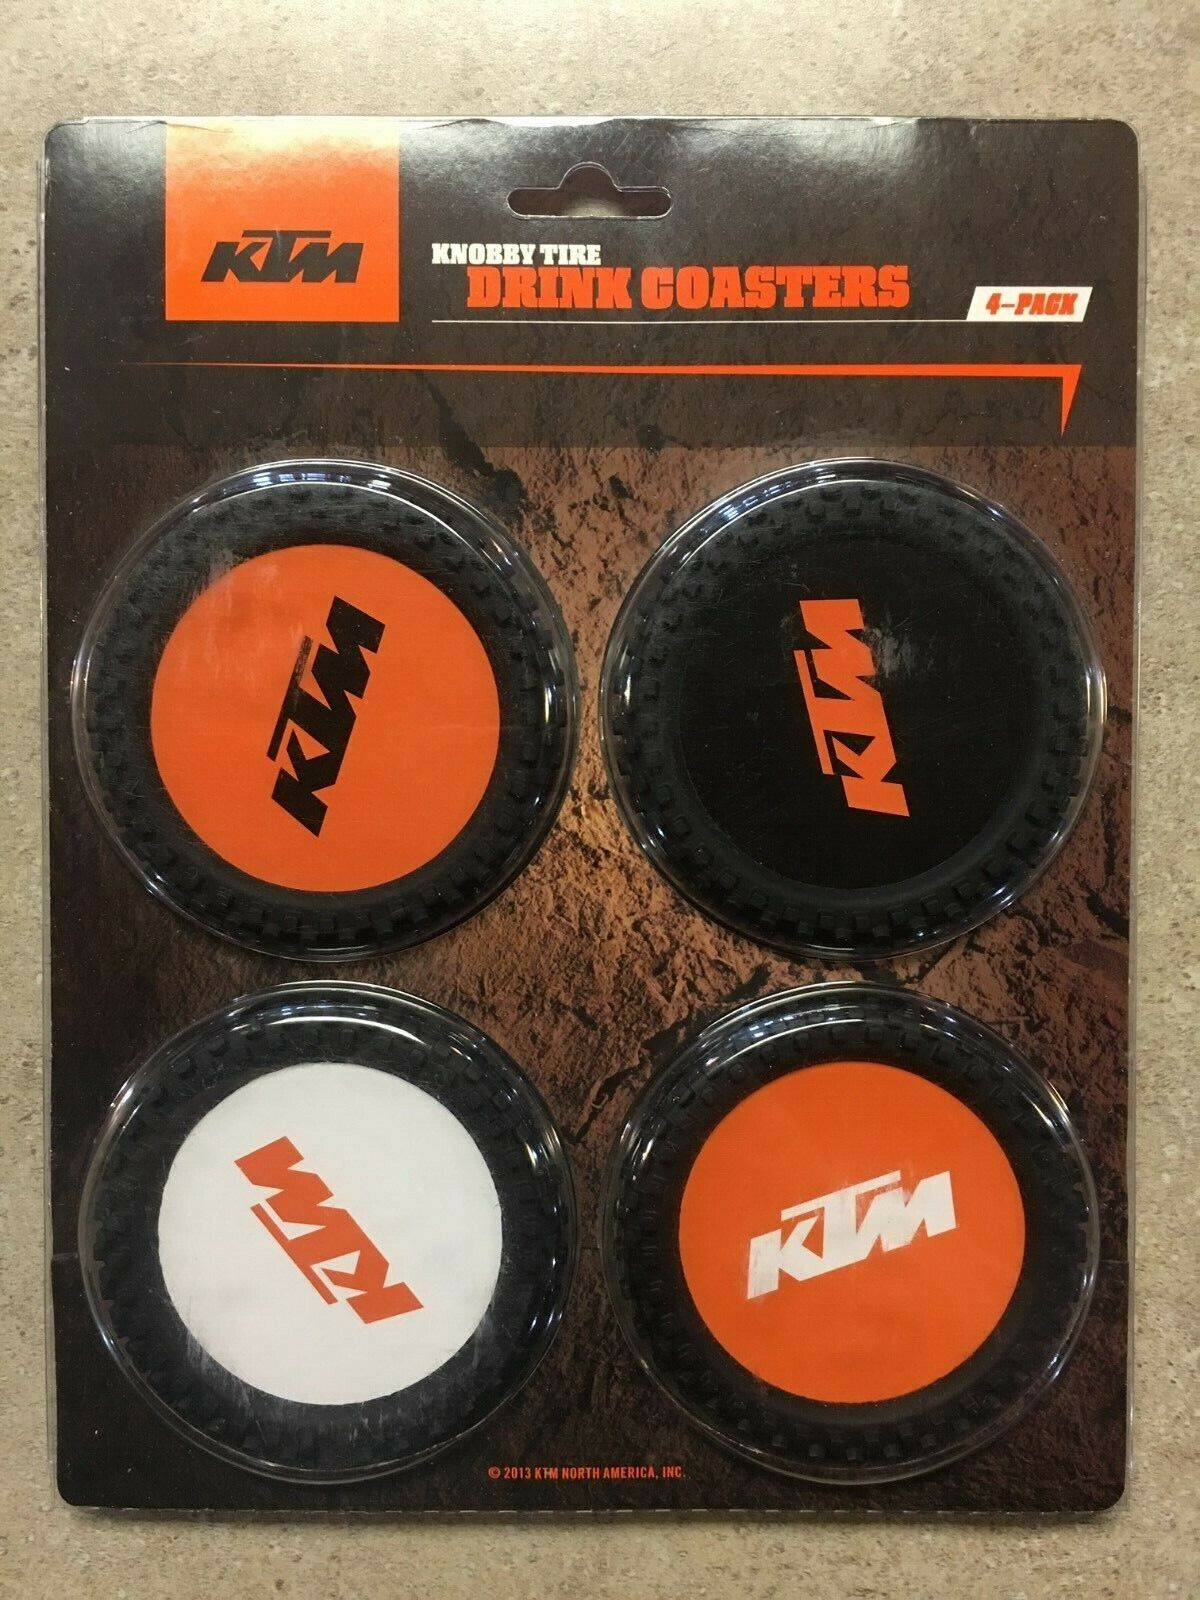 DRINK COASTERS KNOBBY TIRE 4//PK